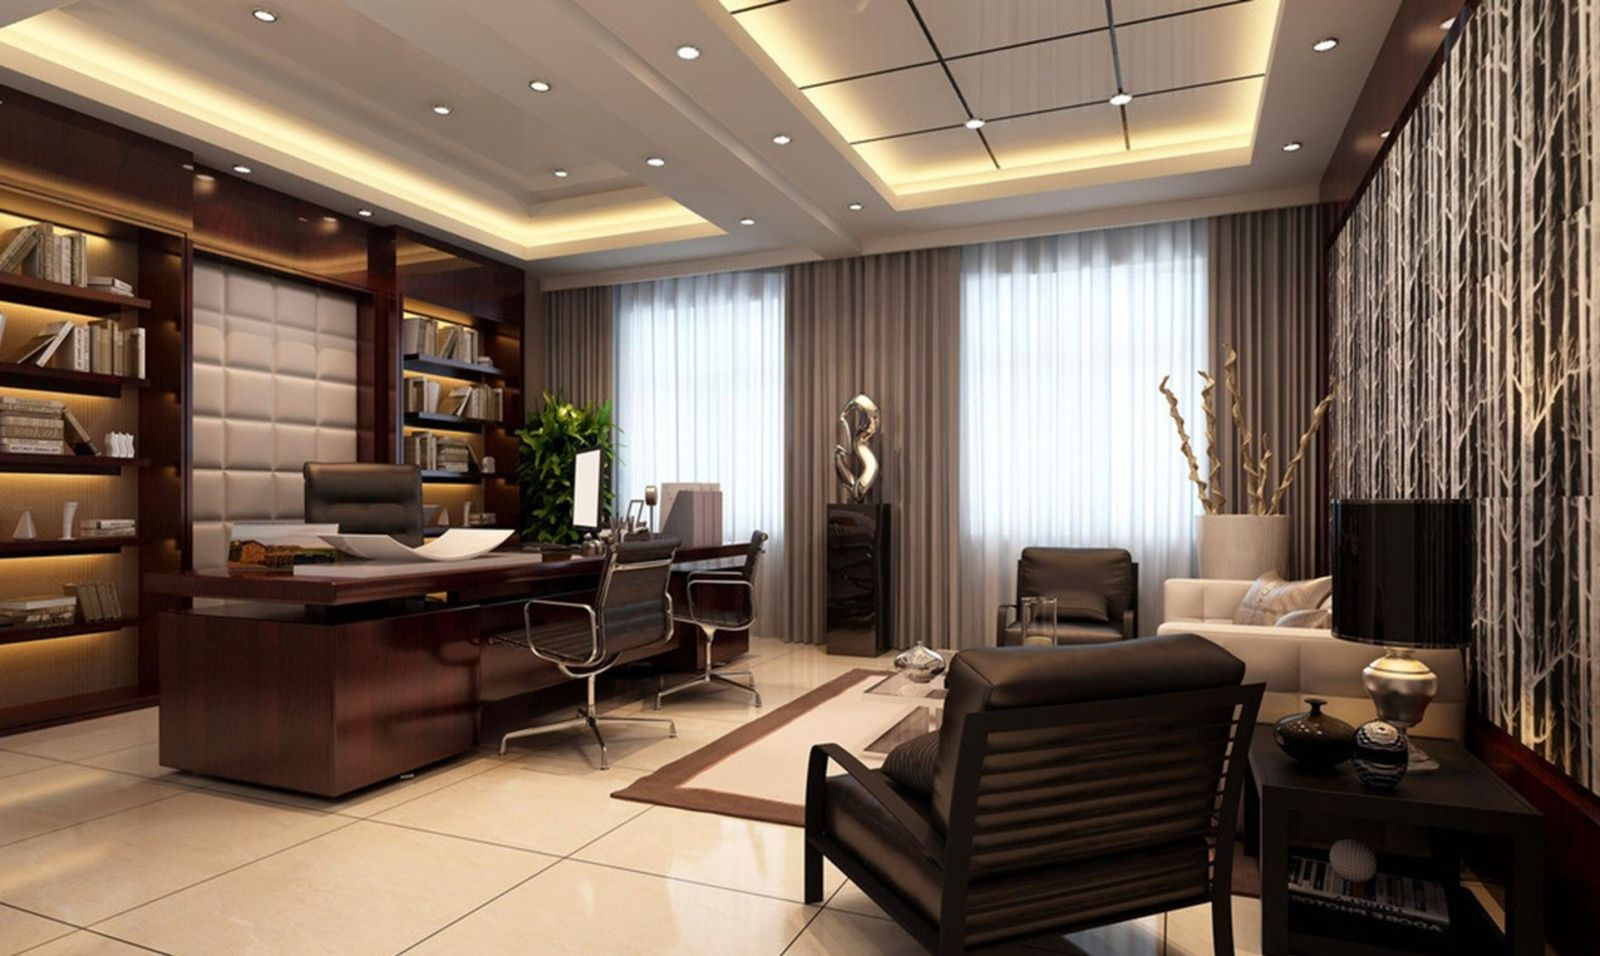 Modern ceo office interior design with executive office for Office interior design ideas